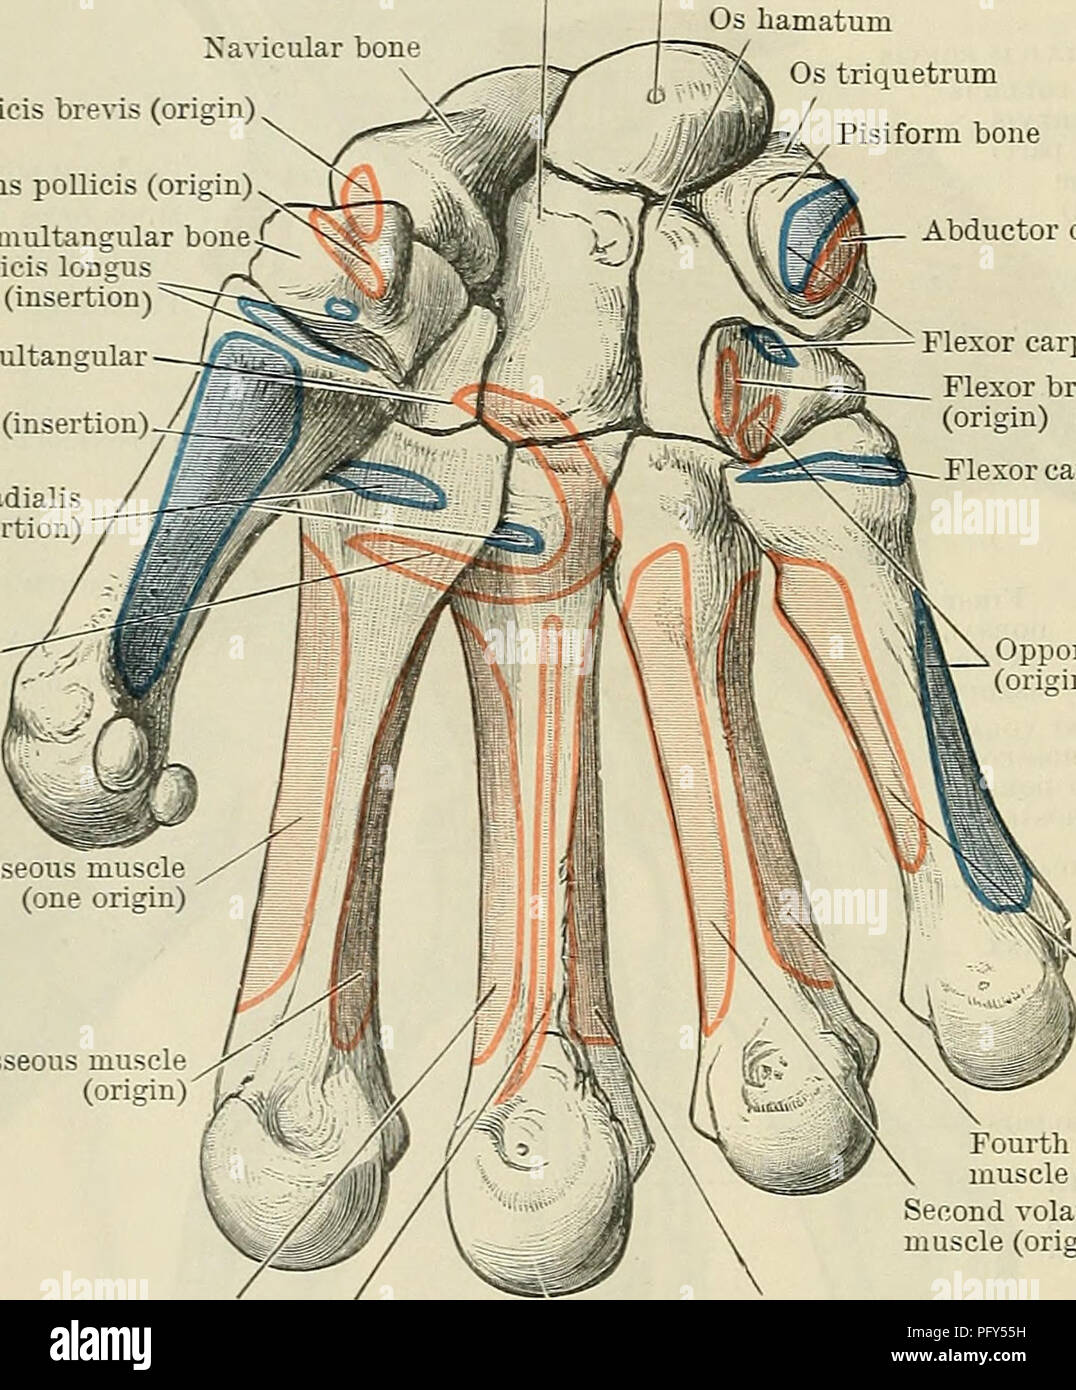 Adductor Muscles Stock Photos & Adductor Muscles Stock Images - Alamy